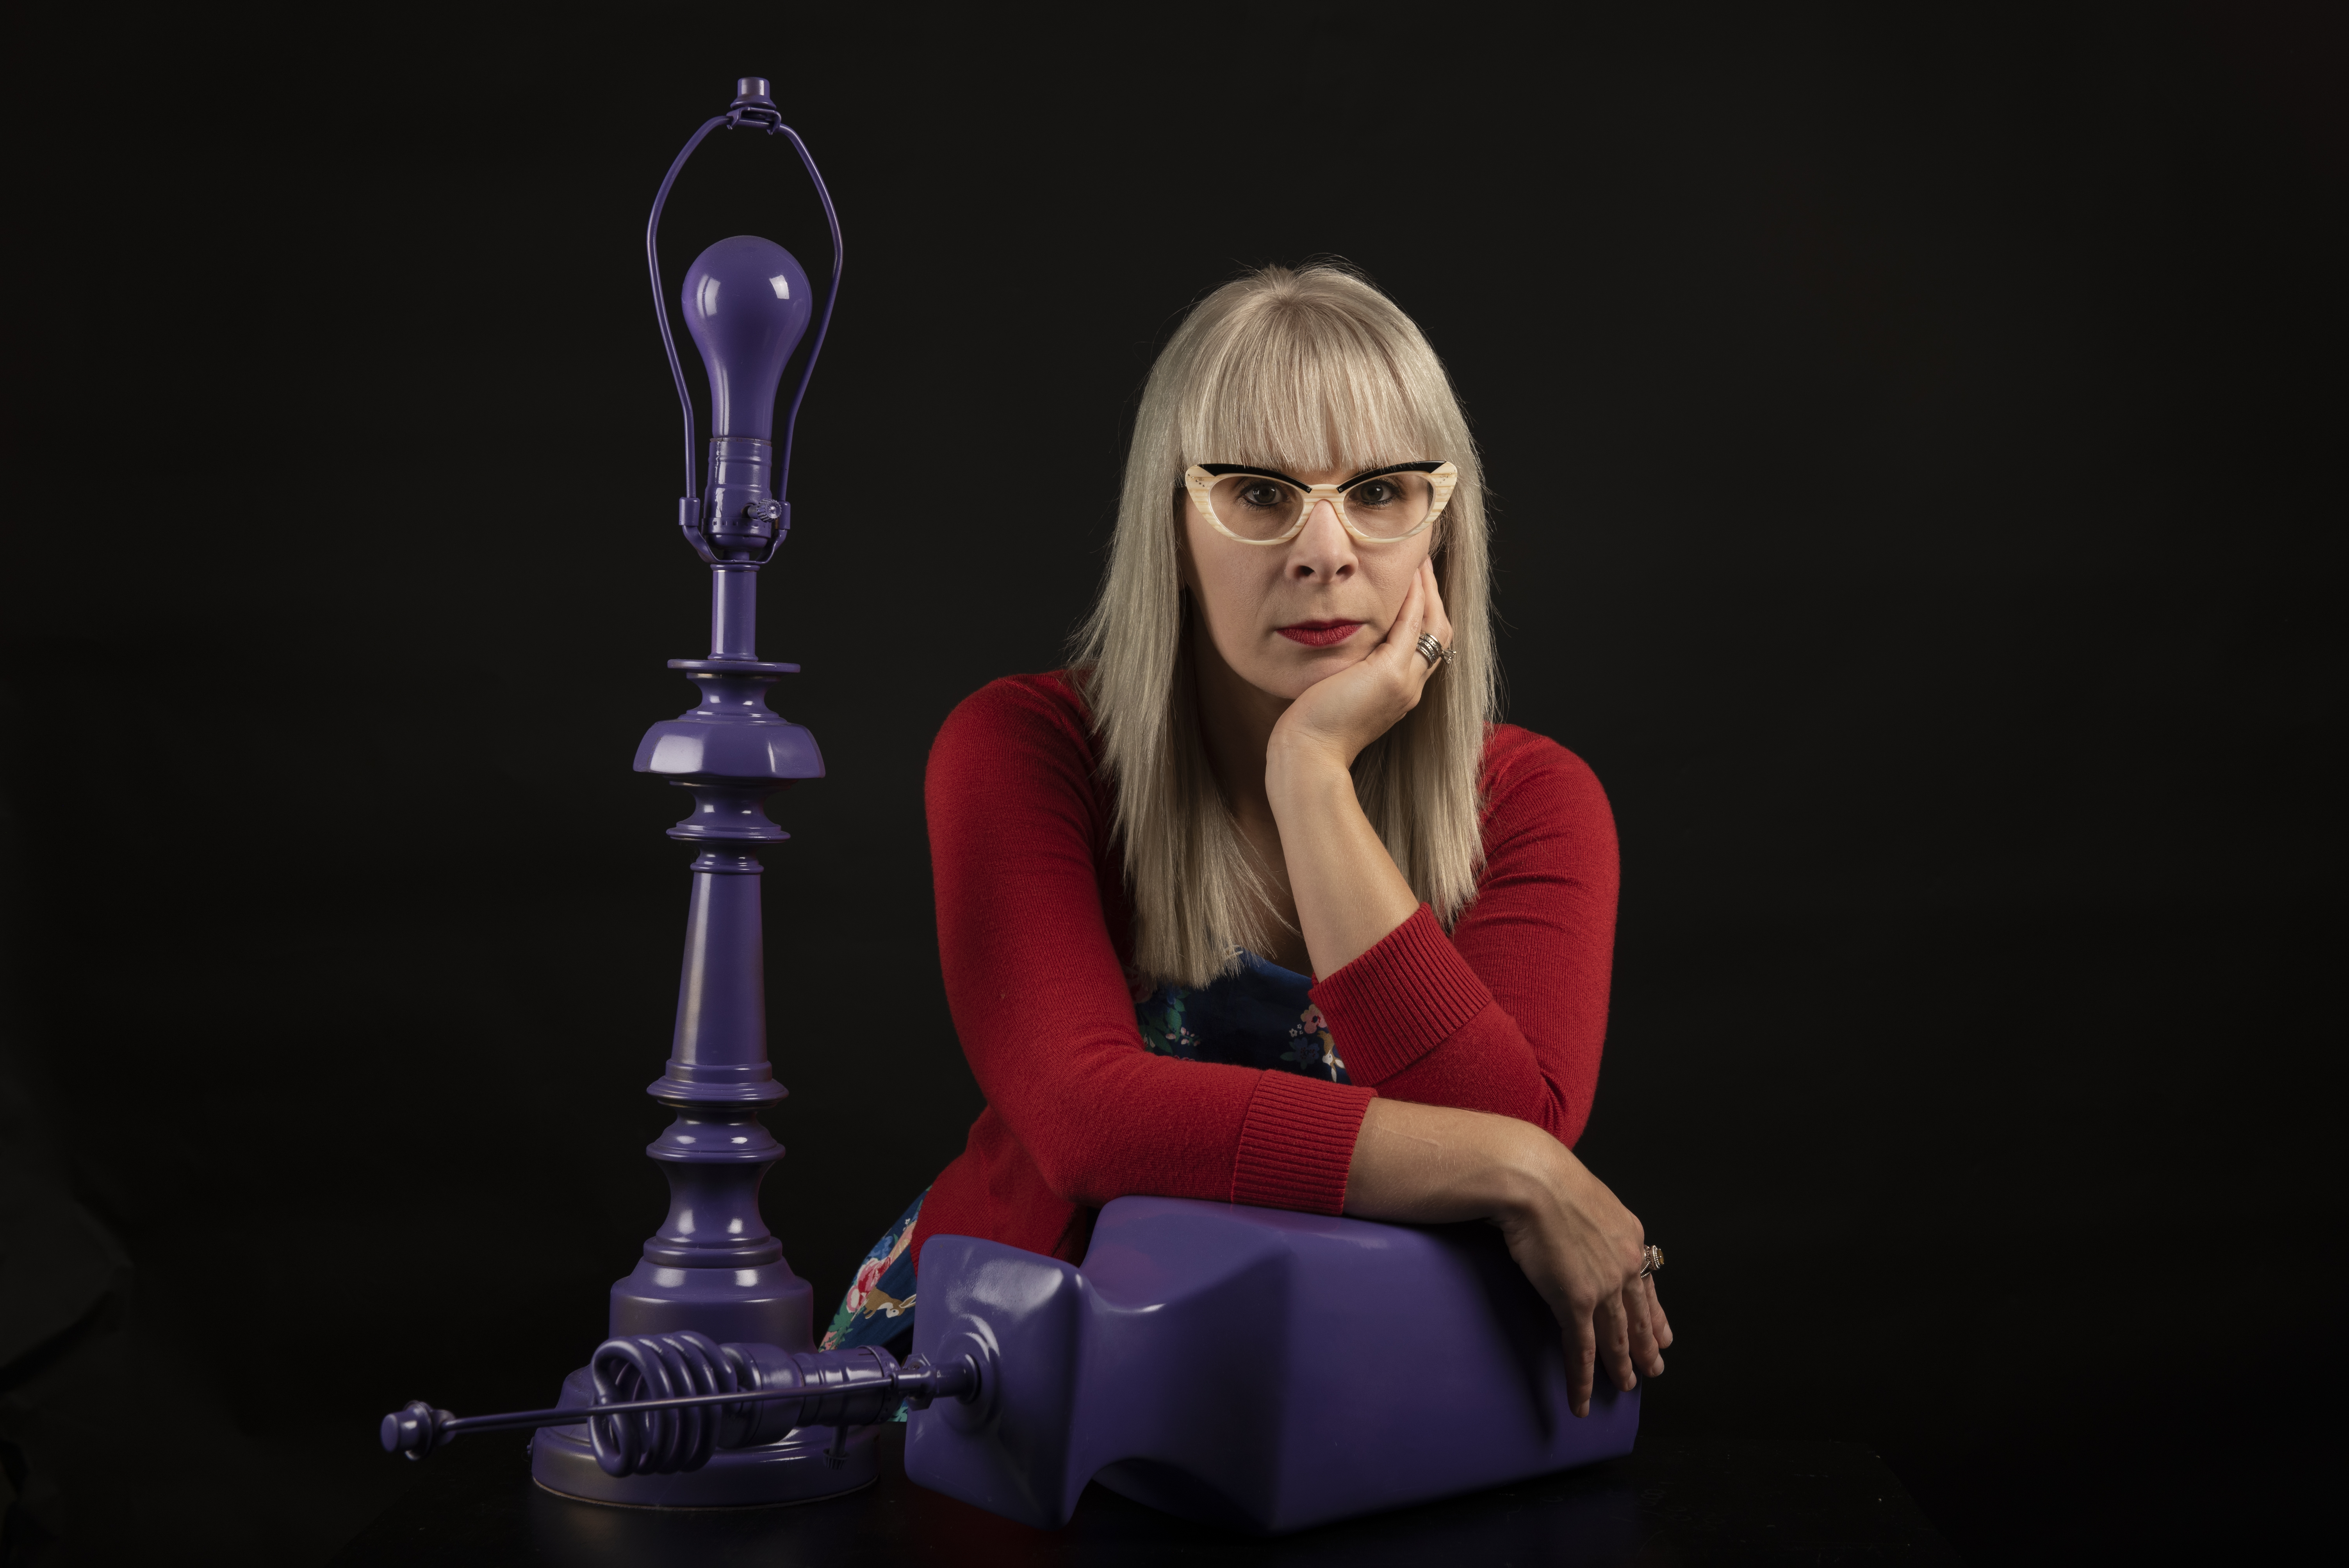 Shelly Clevenger next to a purple lamp